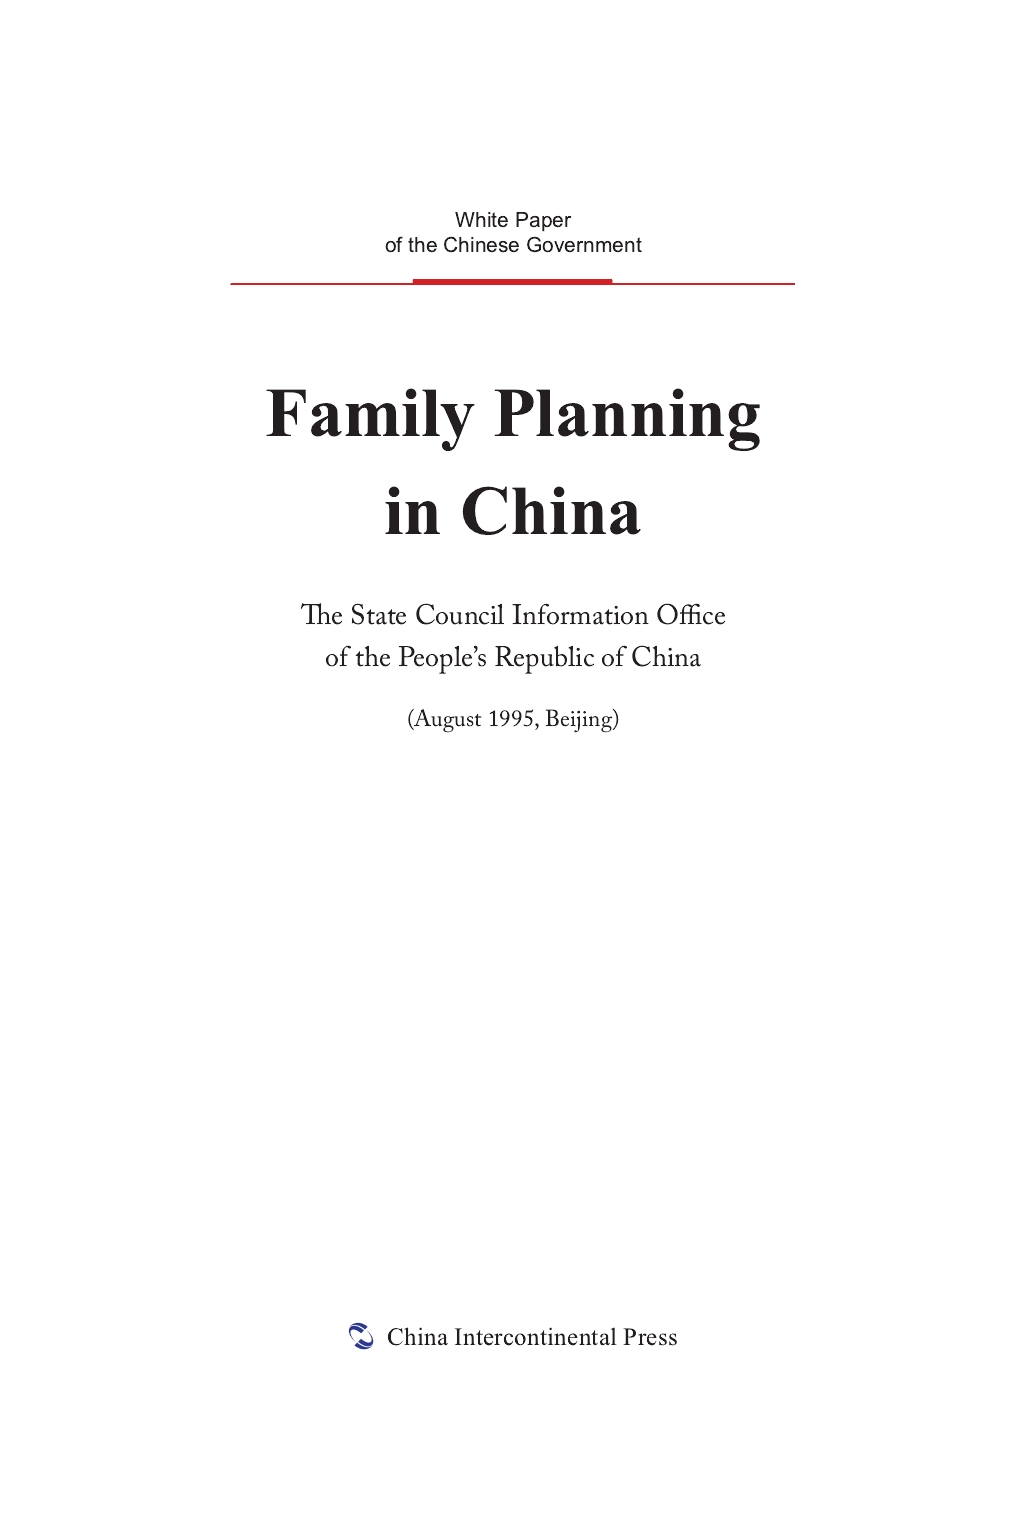 Family Planning in China